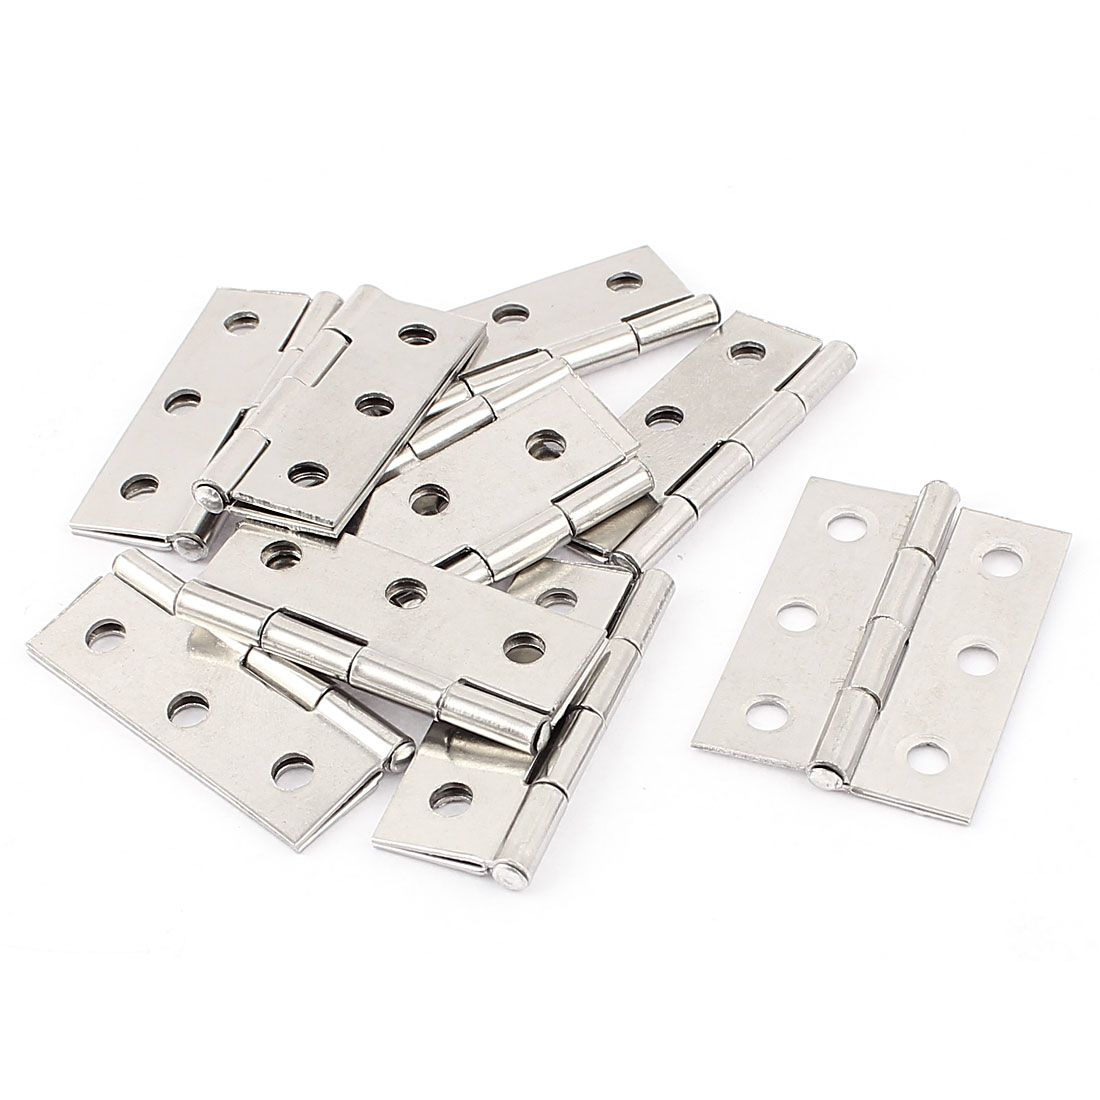 "10 Pcs Silver Tone Window Door Hinge 1.7"" x 1.2"" Polished Metal"